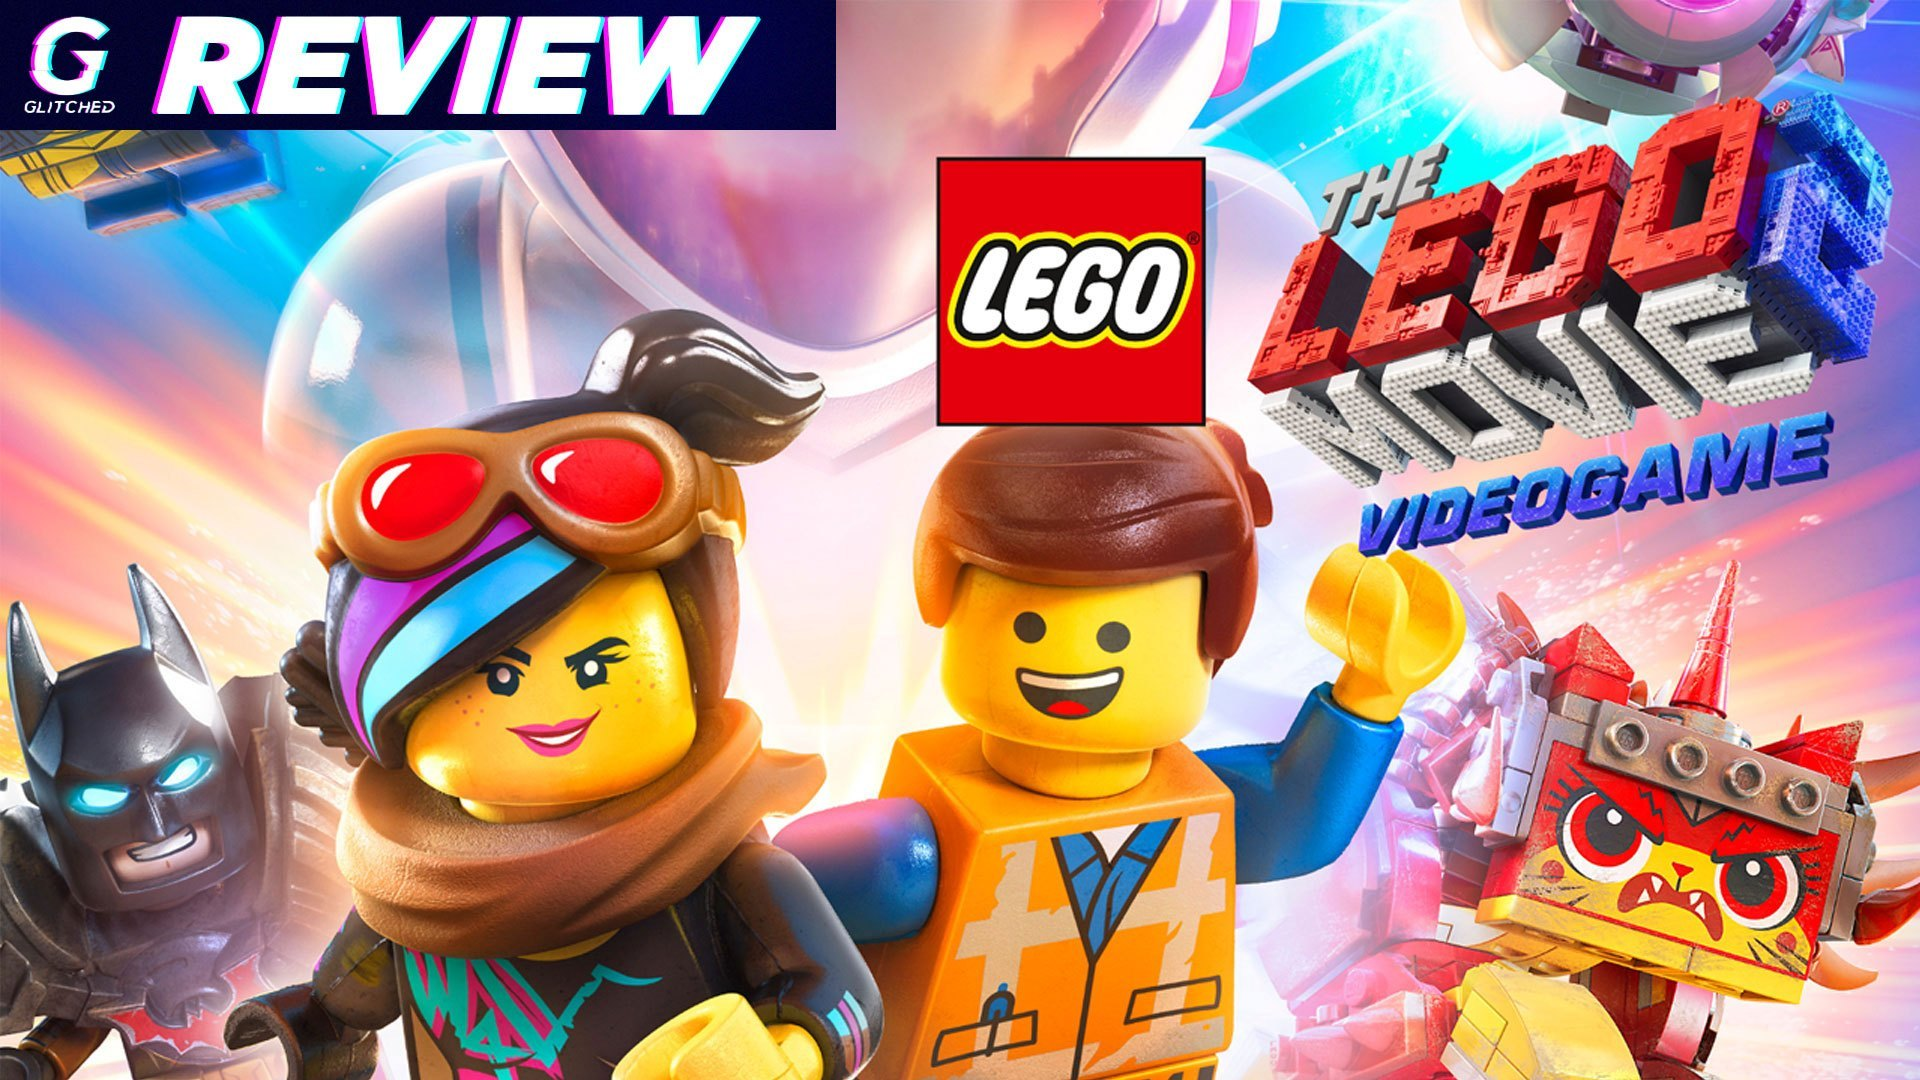 The LEGO Movie 2 Videogame Review GLITCHED 1920x1080